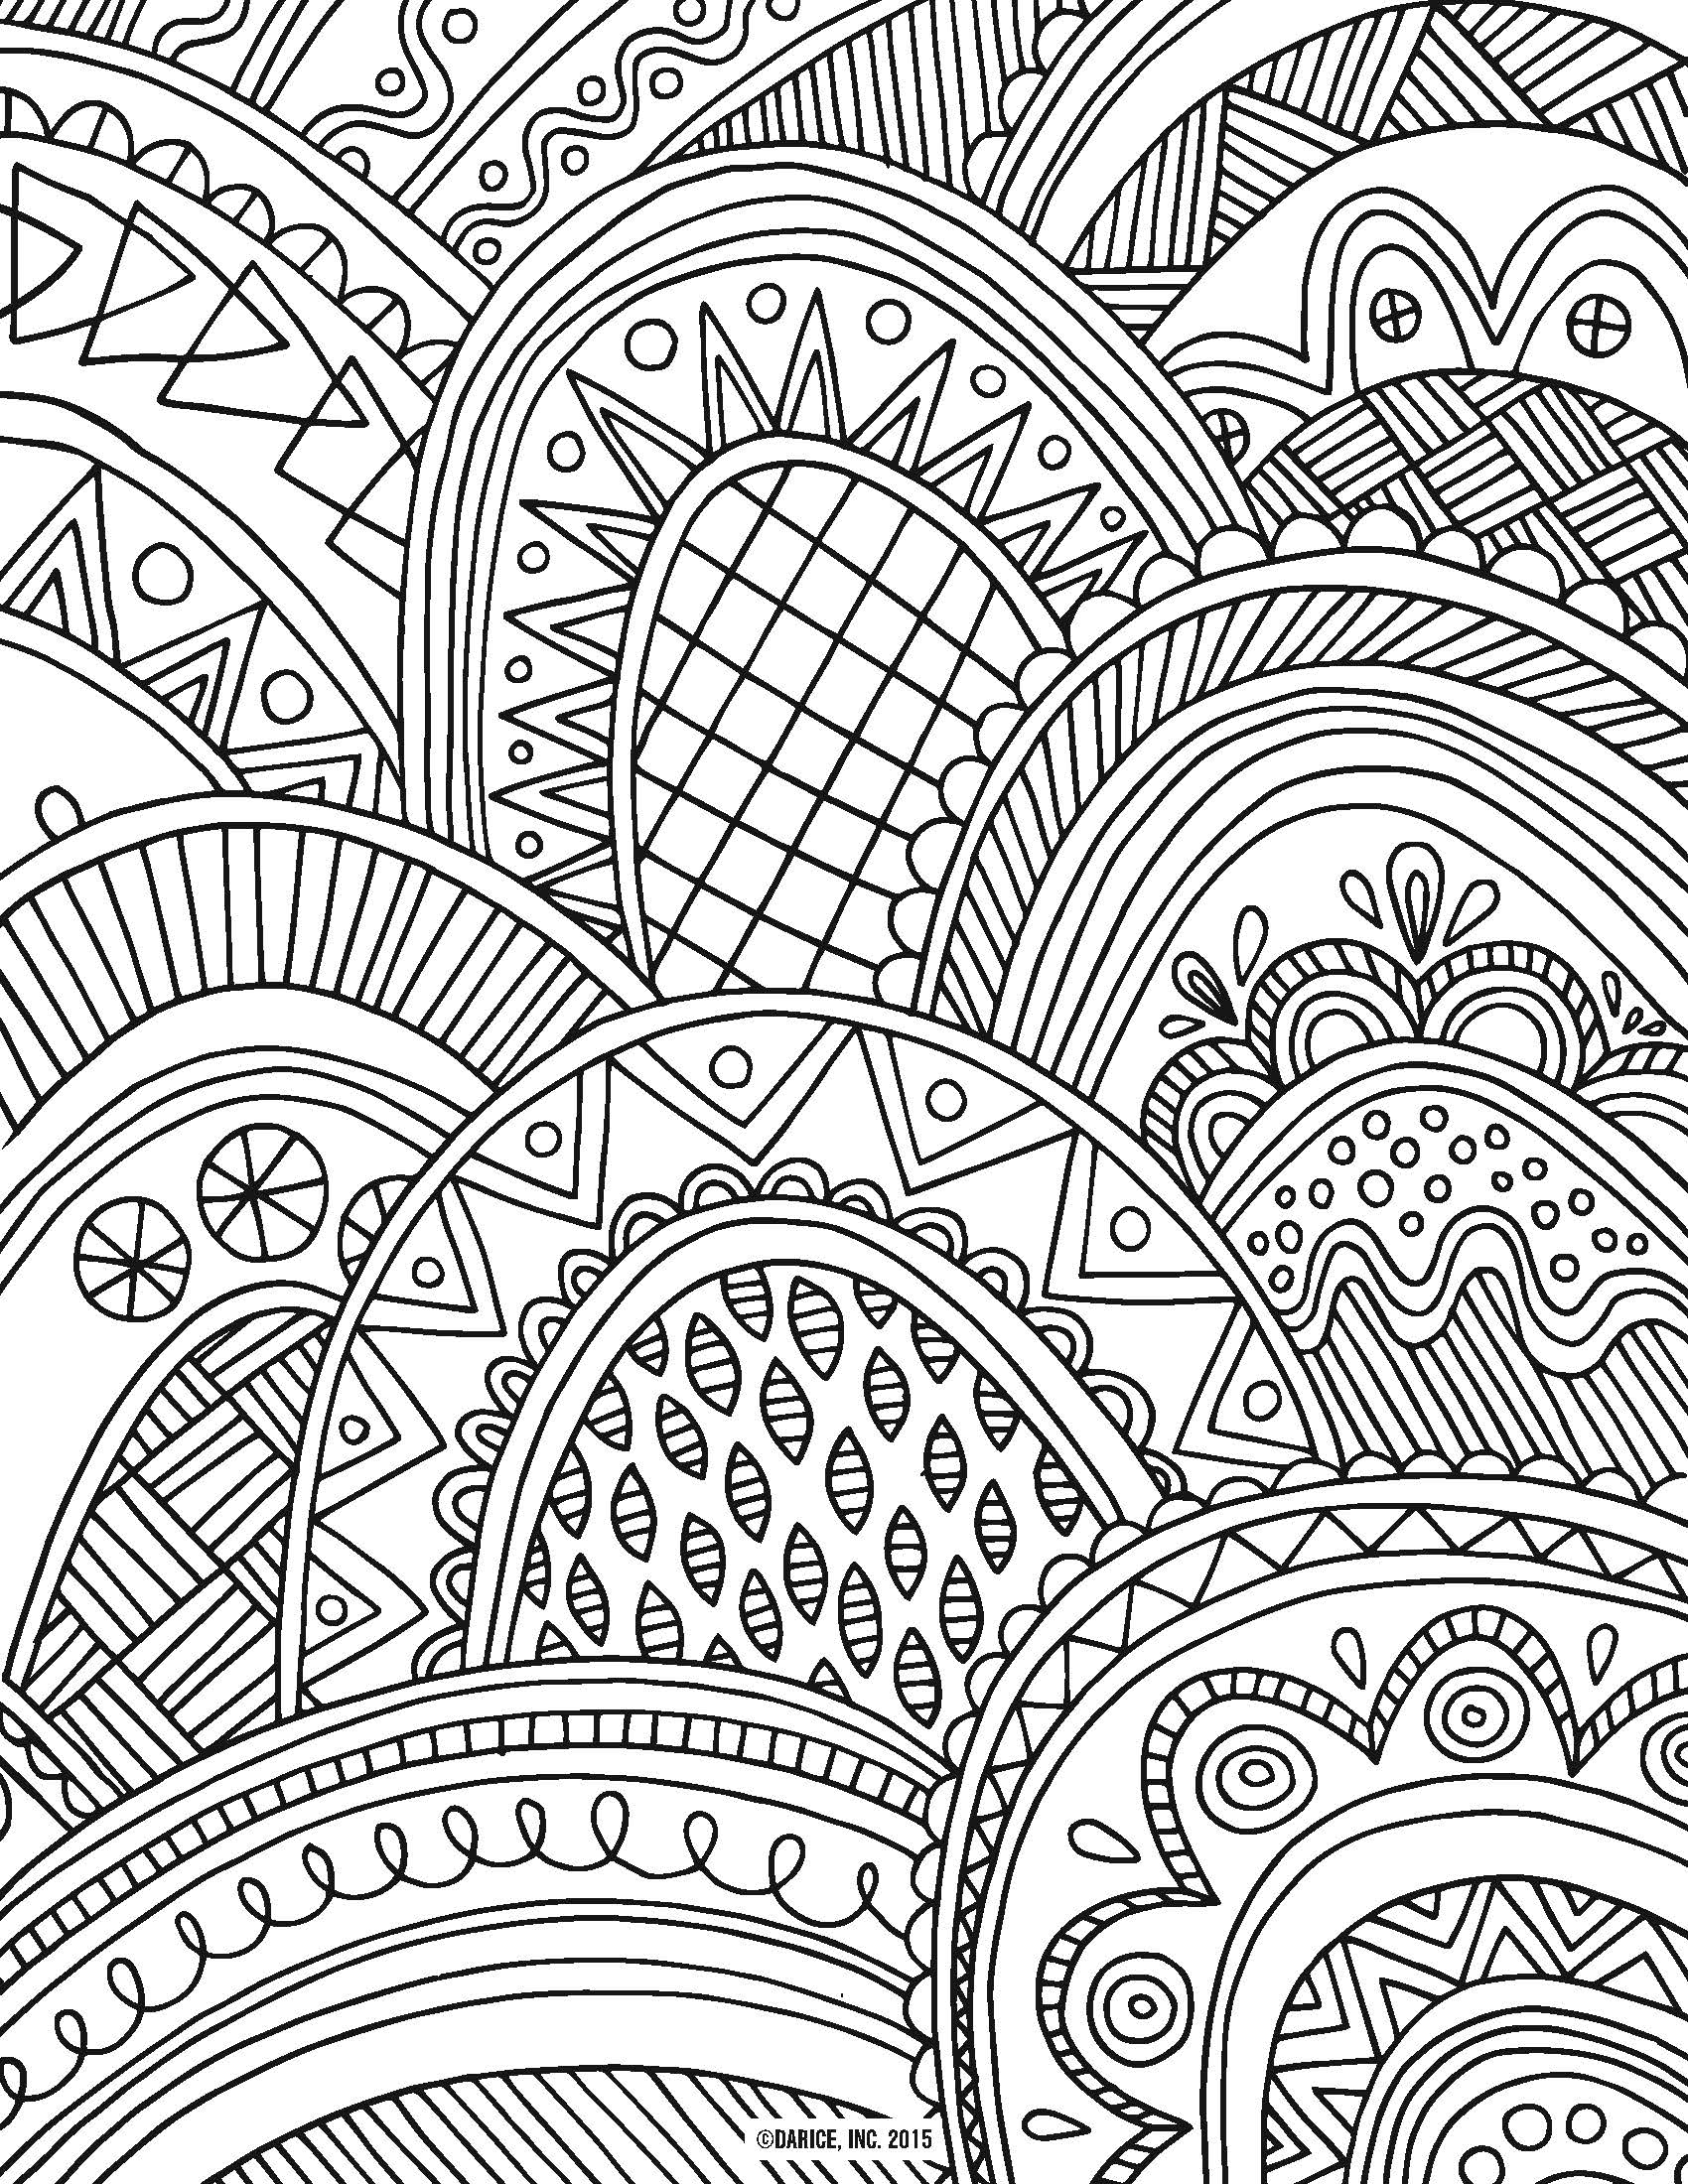 20 Attractive Coloring Pages For Adults - We Need Fun